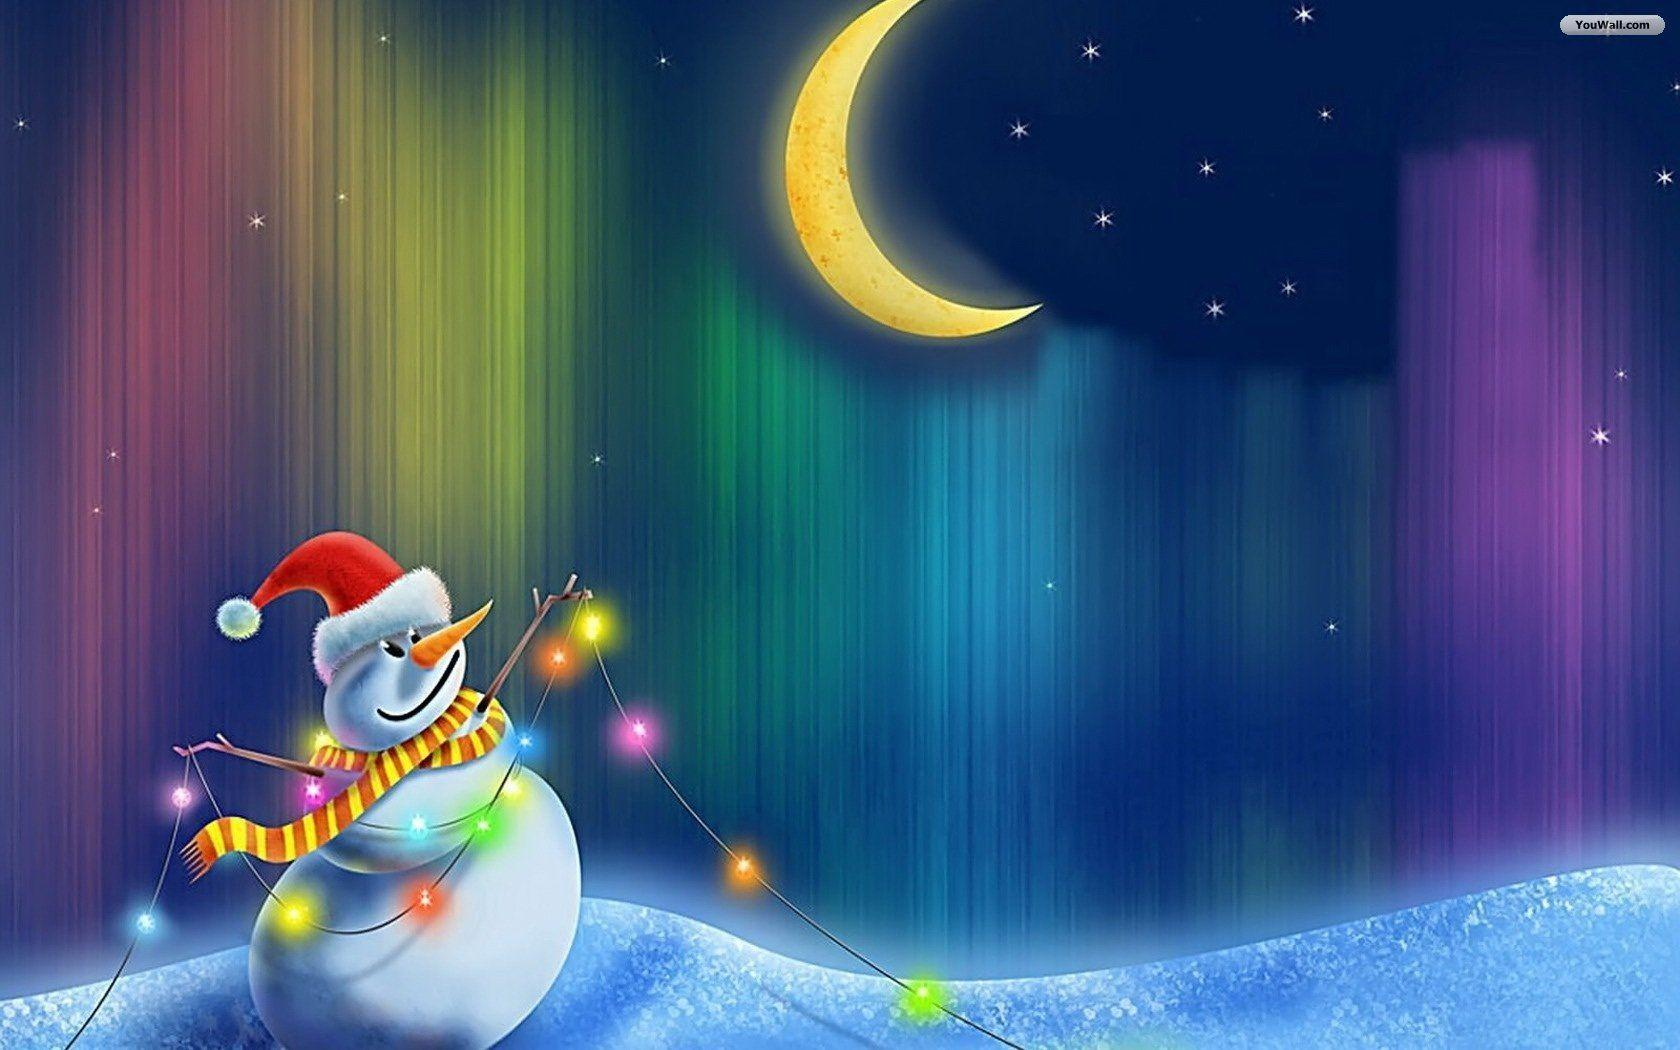 Wallpapers For > Frosty The Snowman Wallpapers Desktop